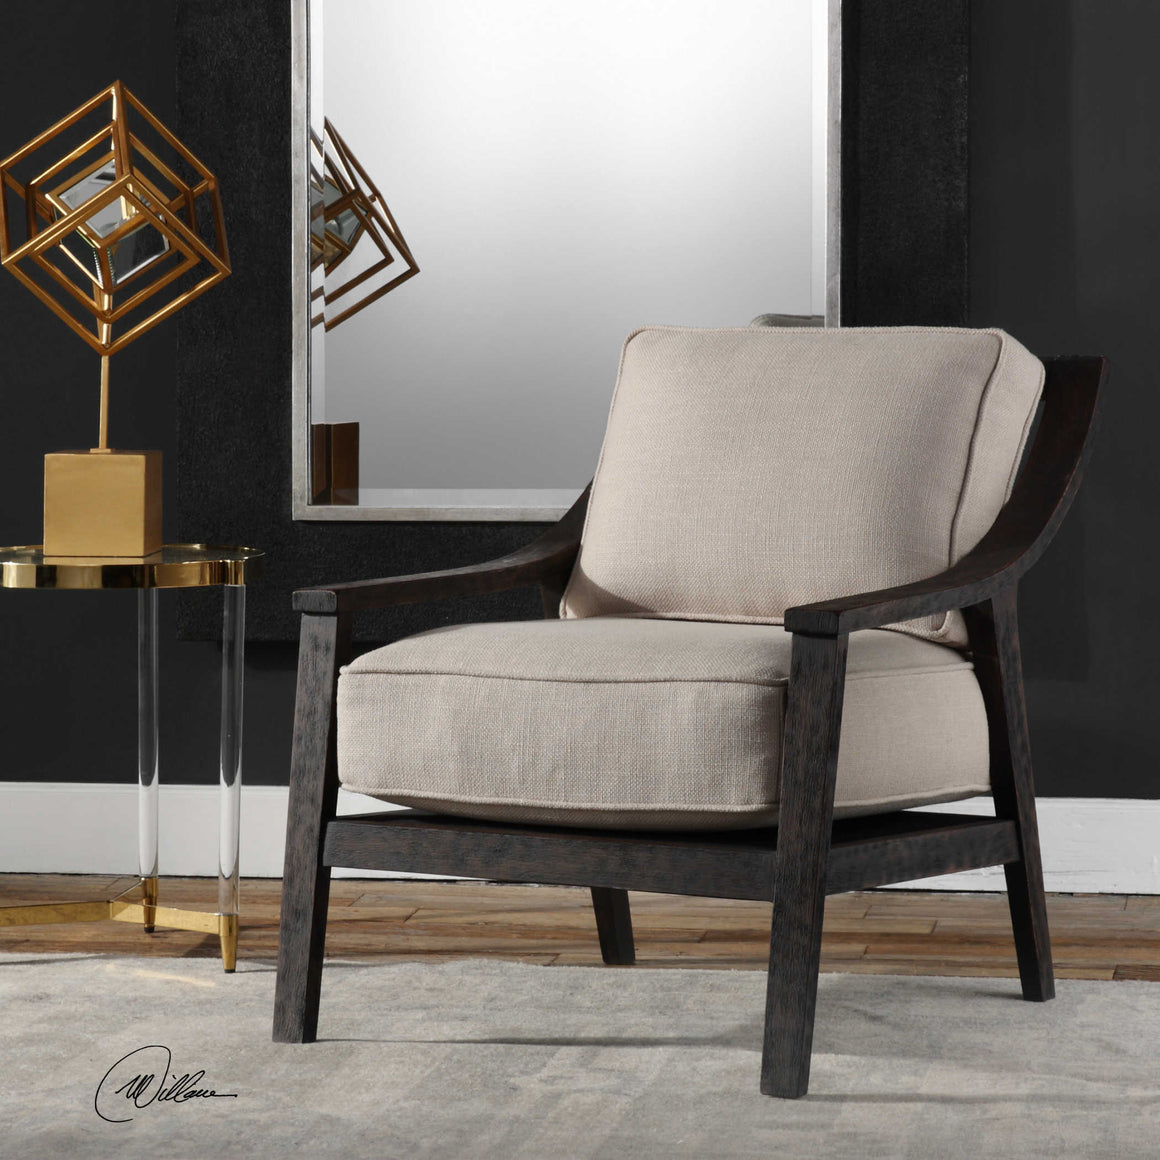 Lyle Rustic Accent Chair - taylor ray decor